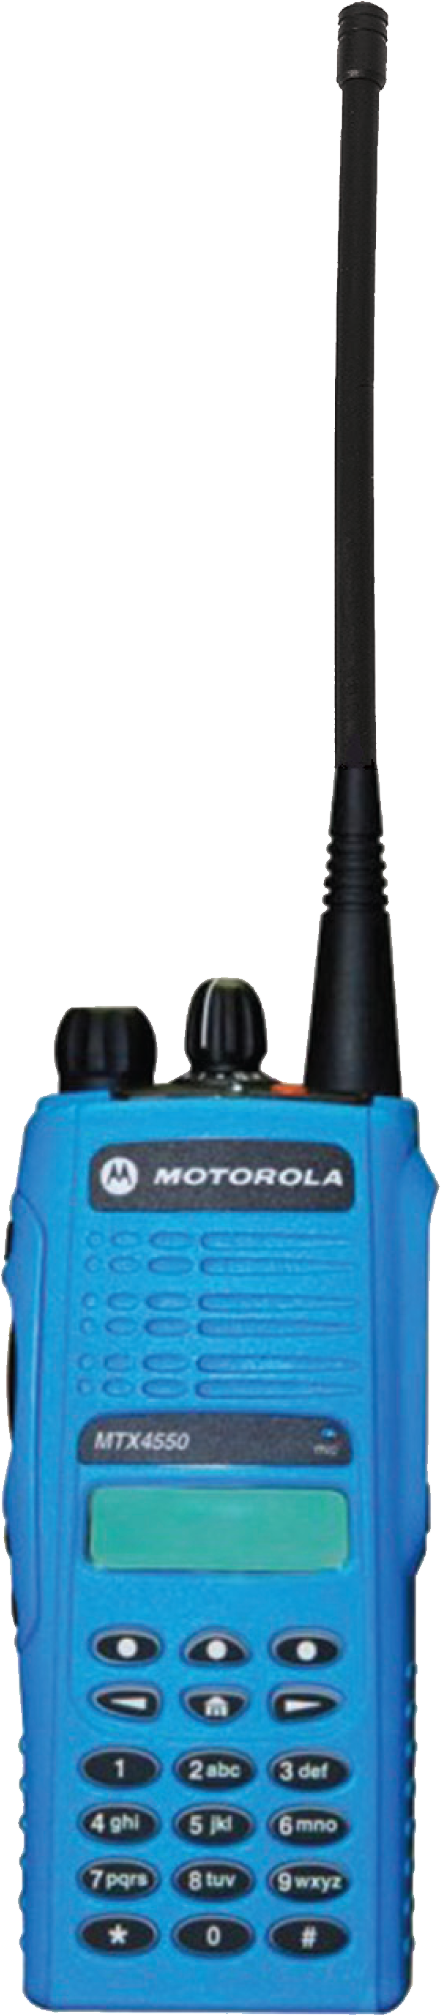 MTX1550 UHF CSA-IS Handheld Two-Way Radio